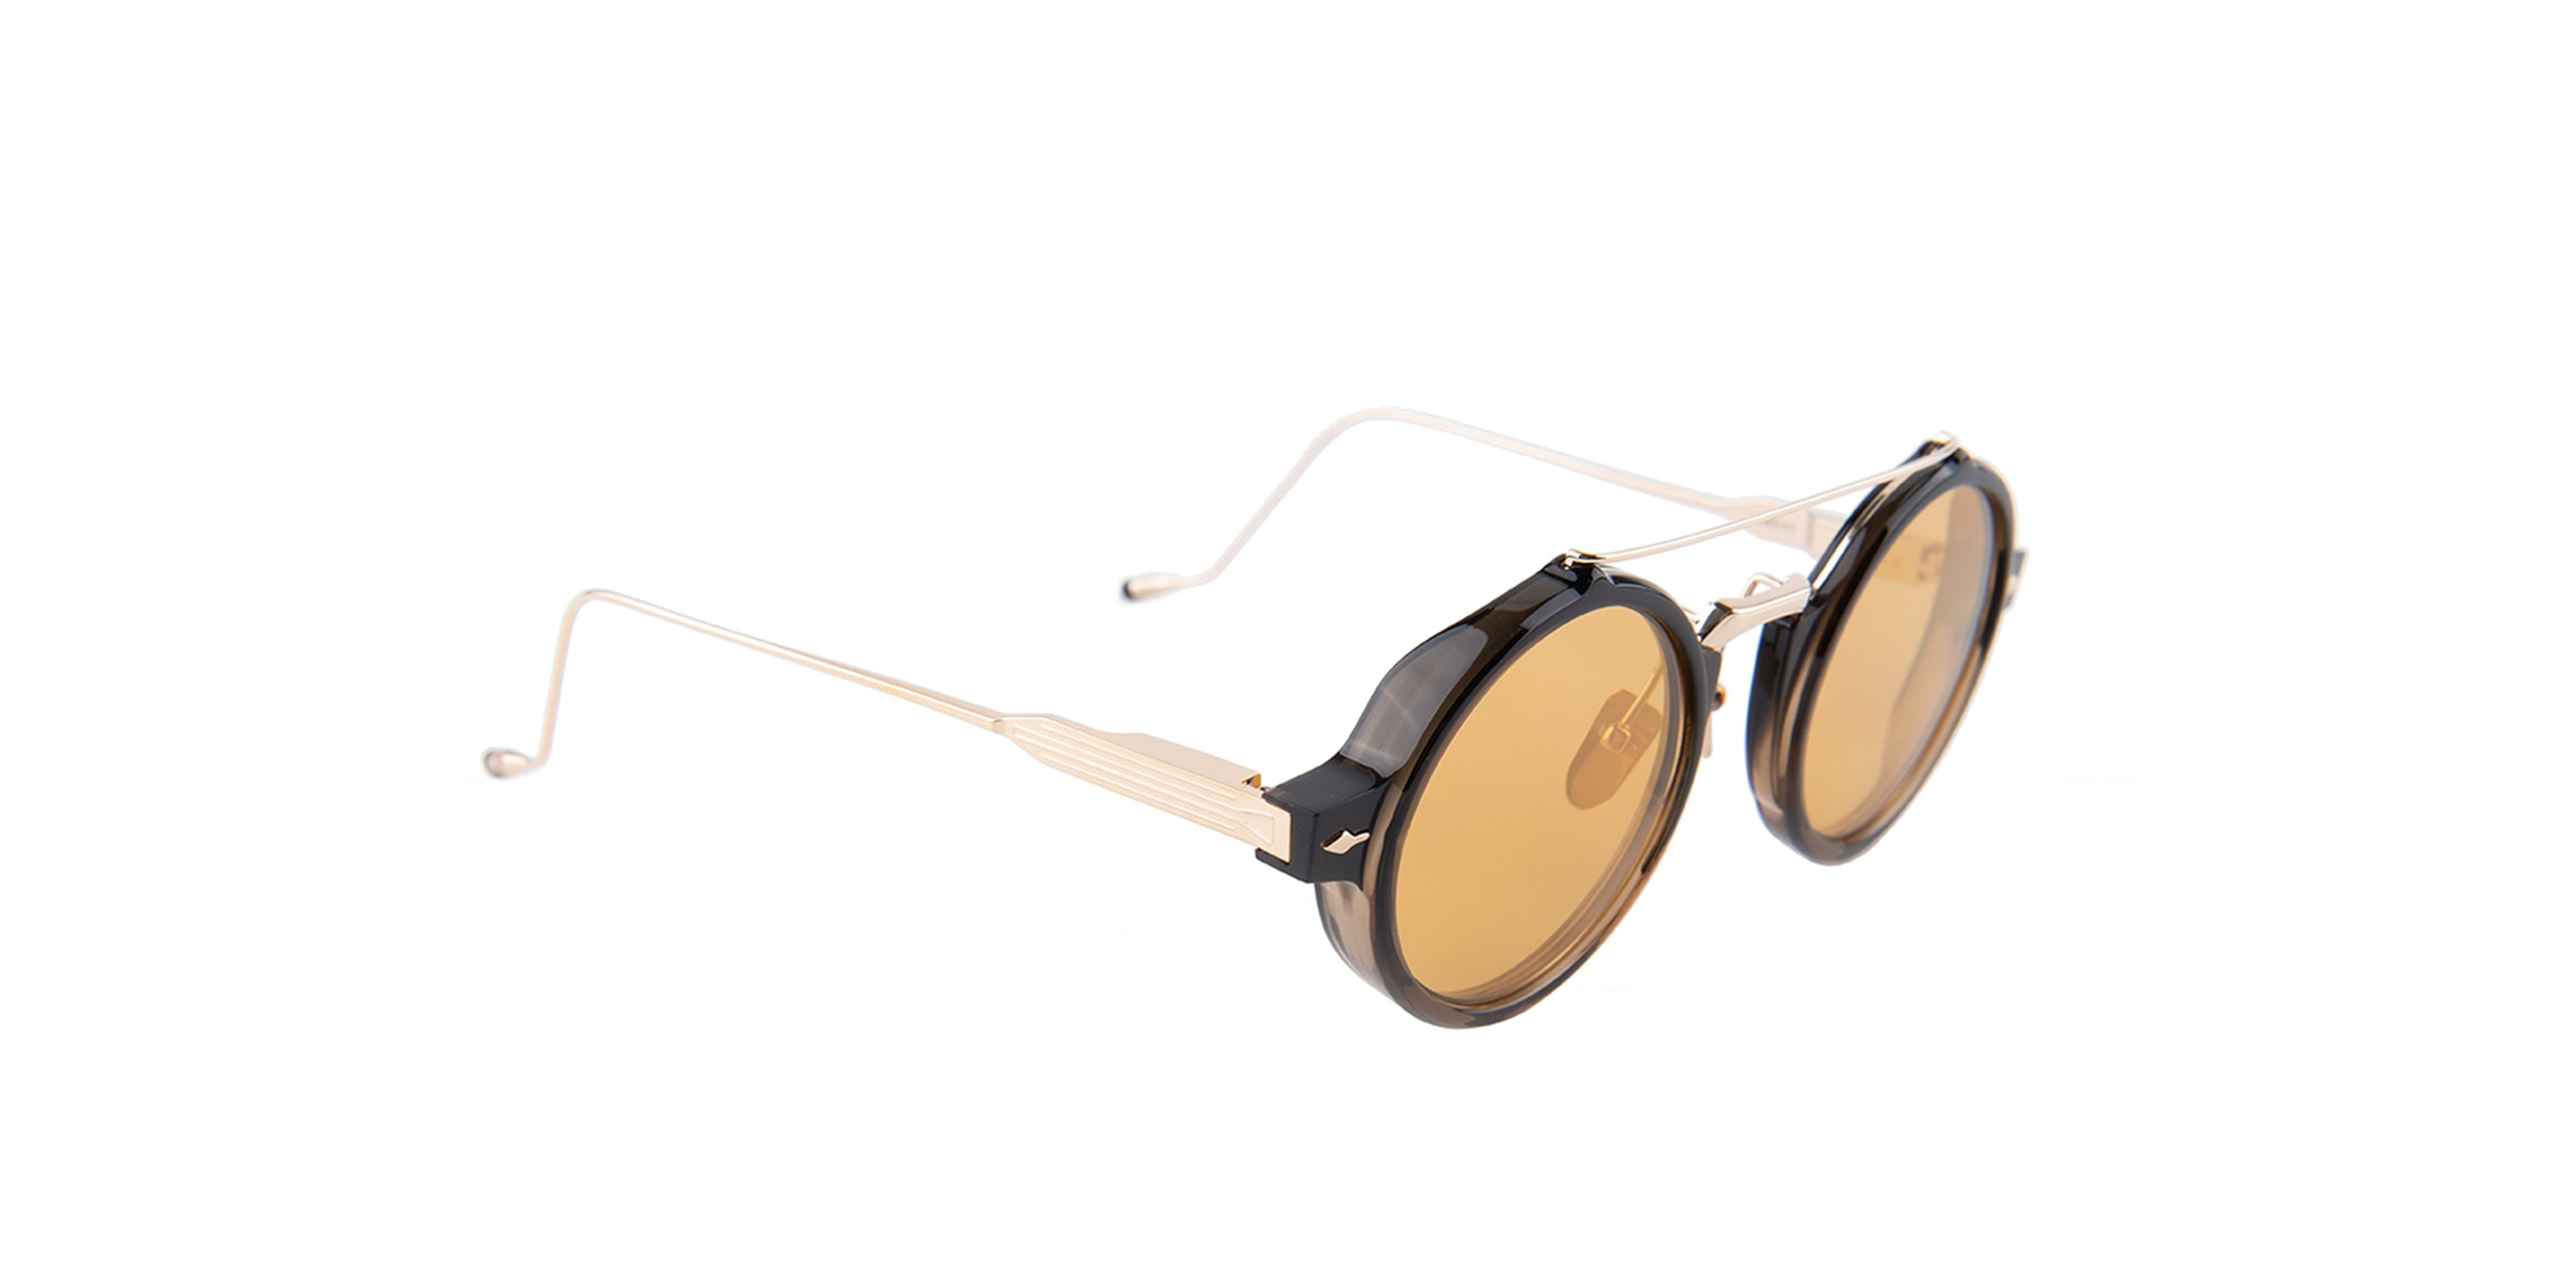 Jacques Marie Mage - Eluard Bronze/Orange Oval Unisex Sunglasses - 41mm-Sunglasses-Designer Eyes